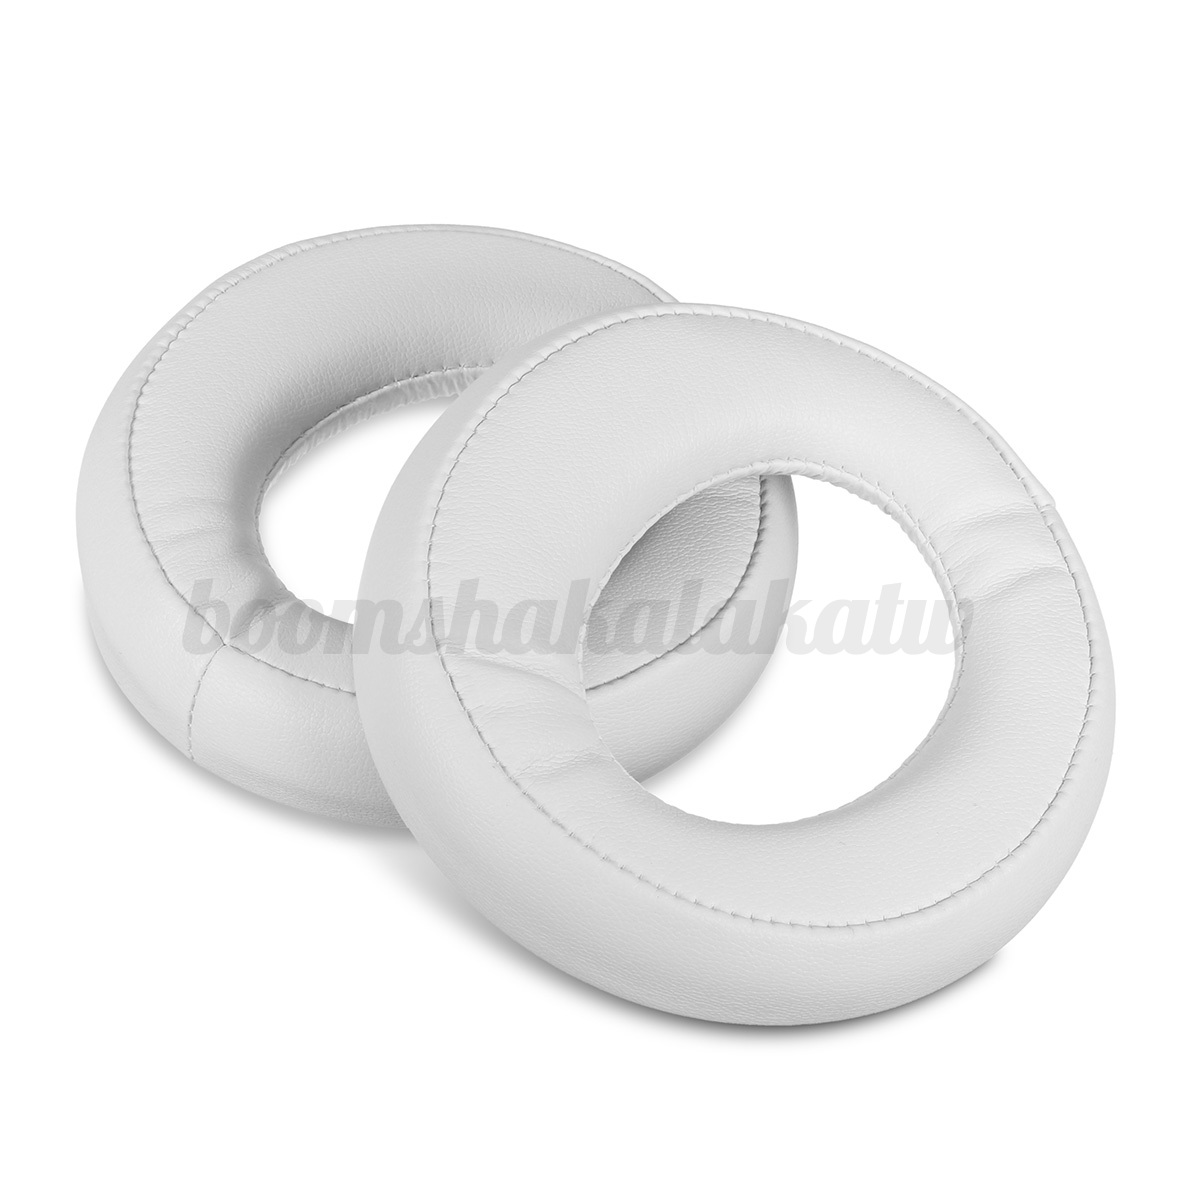 Replacement-Ear-Pads-Earpads-Cushion-For-SONY-Gold-Wireless-PS3-PS4-7-1-Headset